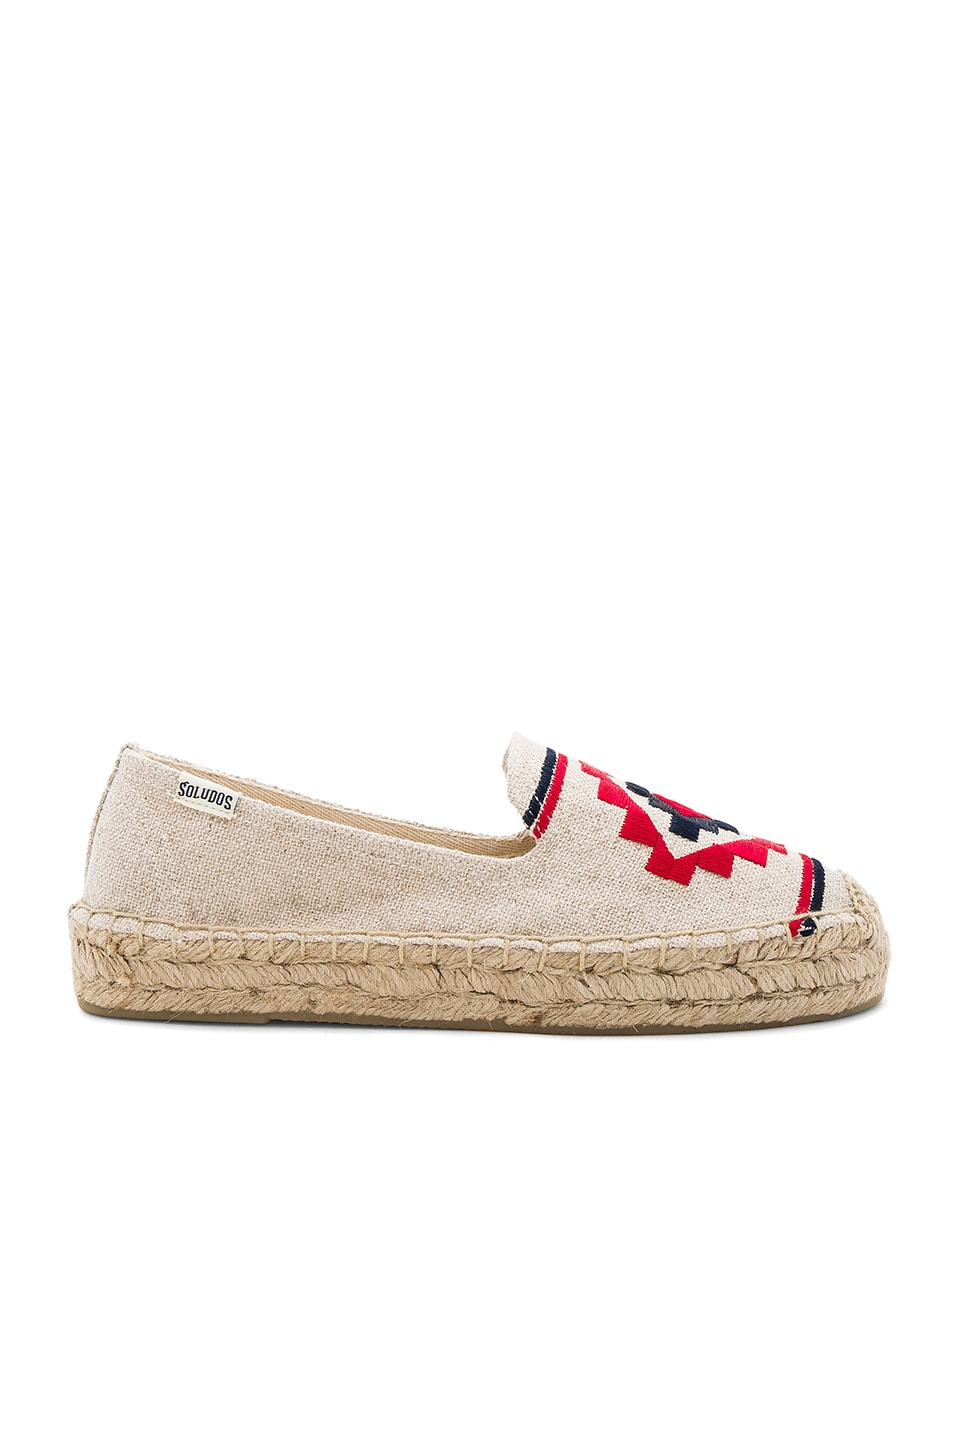 Soludos Embroidered Platform Smoking Slipper